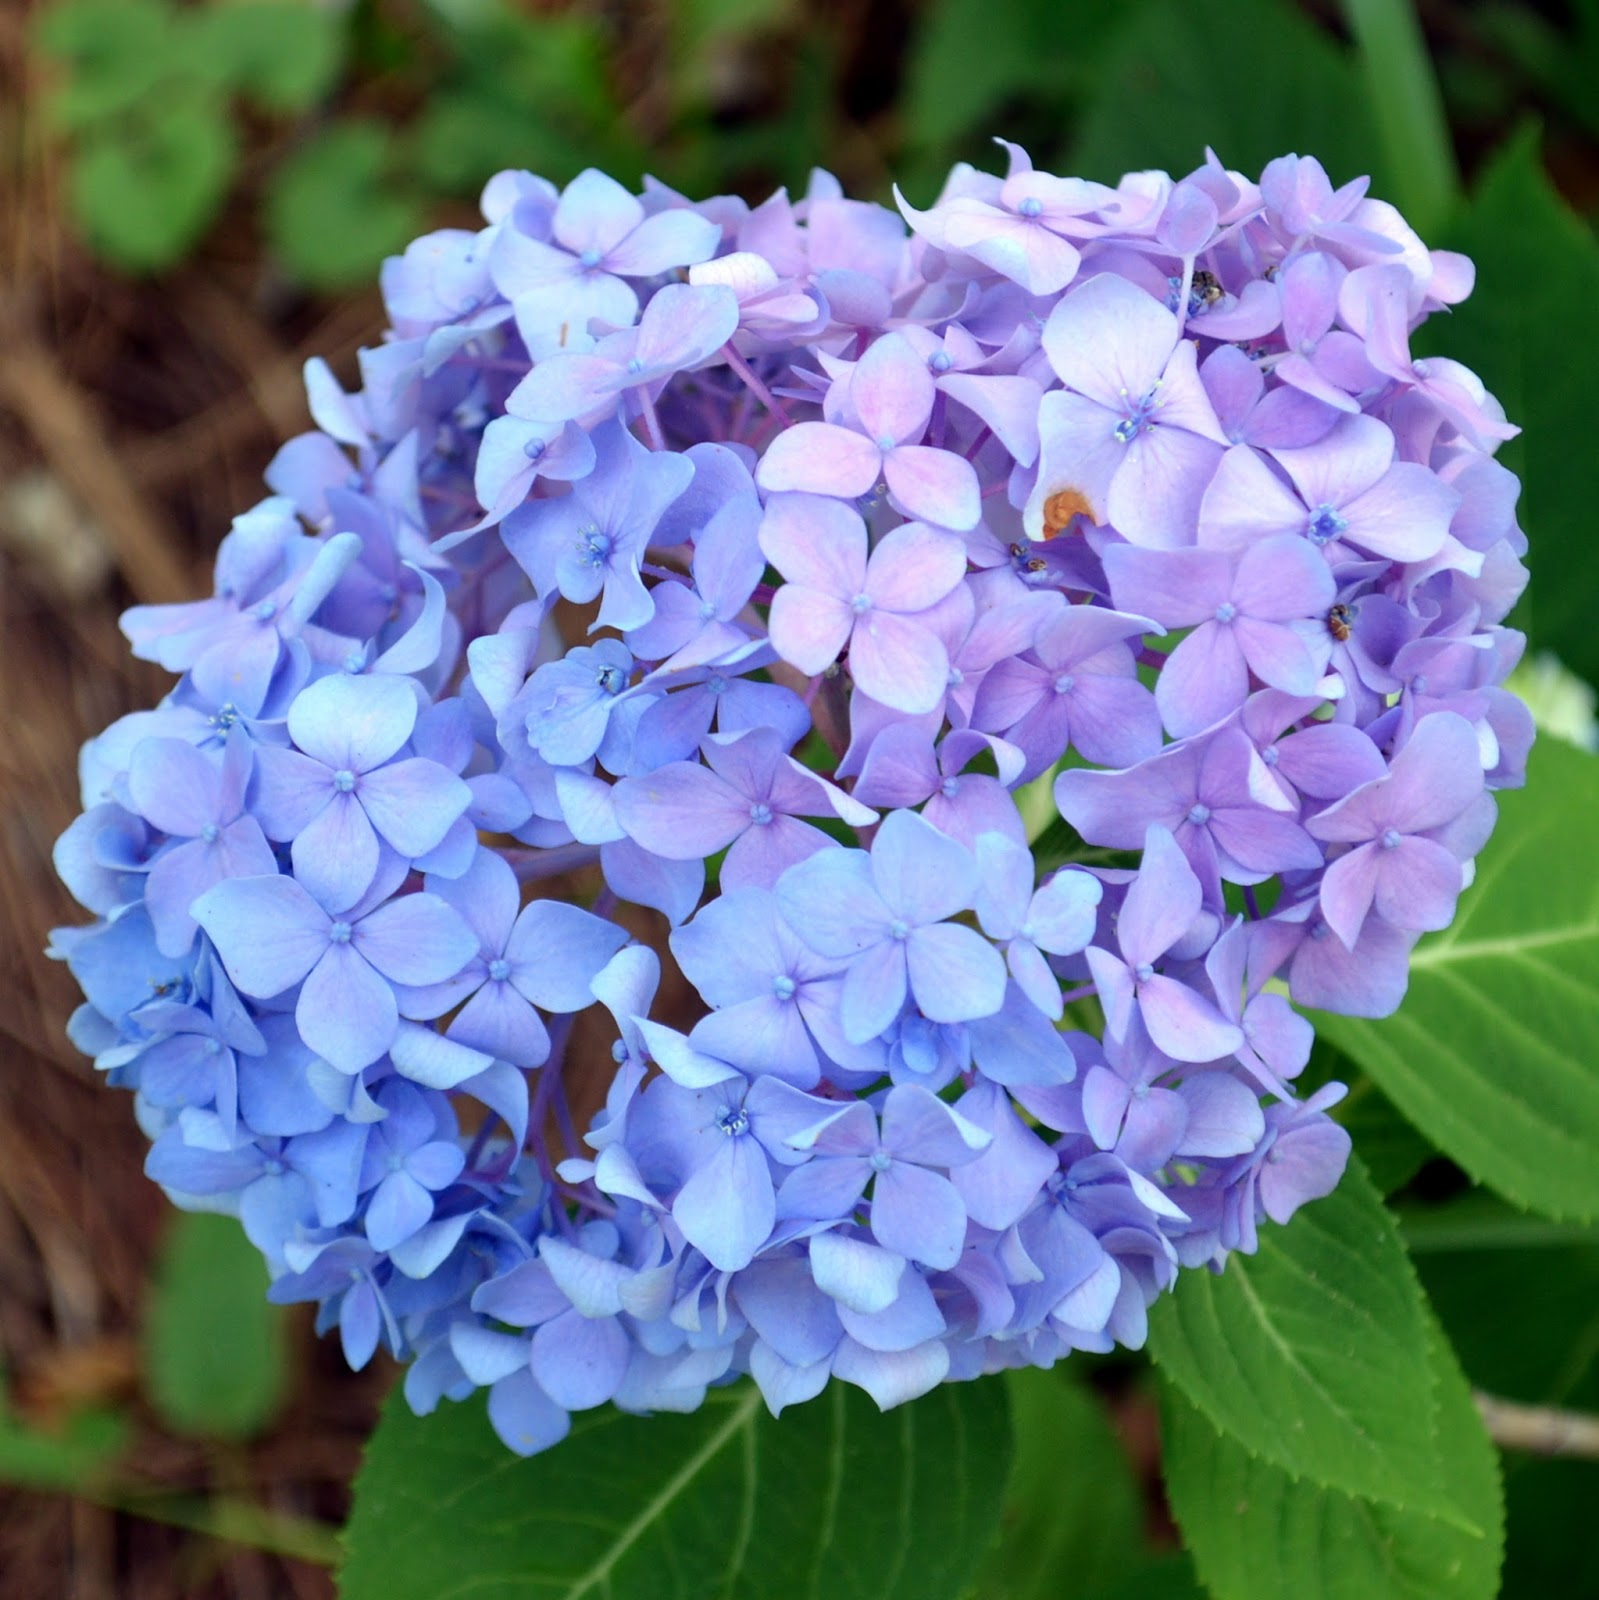 Farmers seed supply co inc hydrangea flower of many colors hydrangea flower of many colors hydrangeas are to summer what izmirmasajfo Images